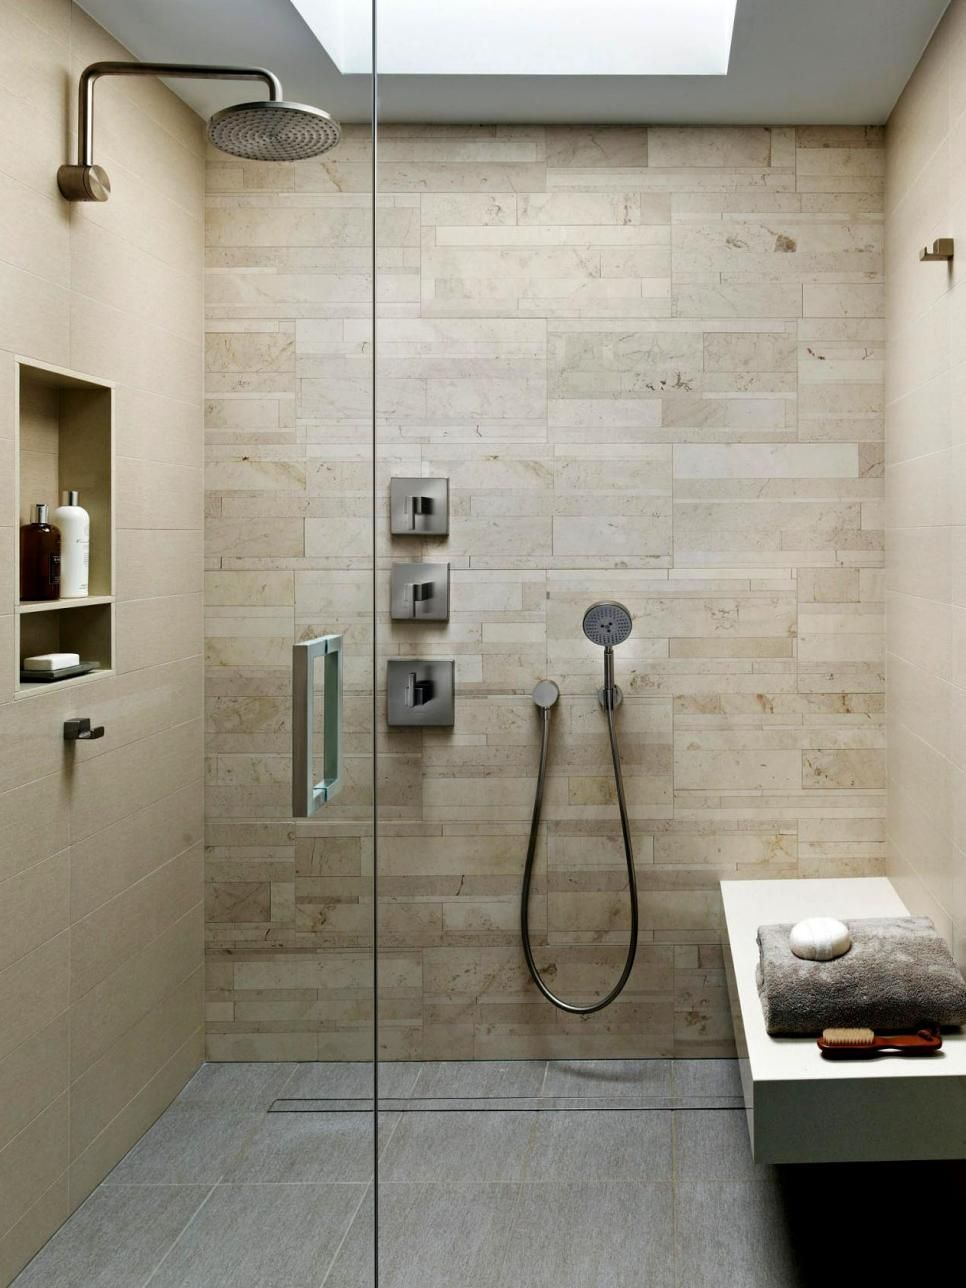 Bathroom Remodeling Trends 2015 10 best bathroom remodeling trends | handheld, pets and bathroom